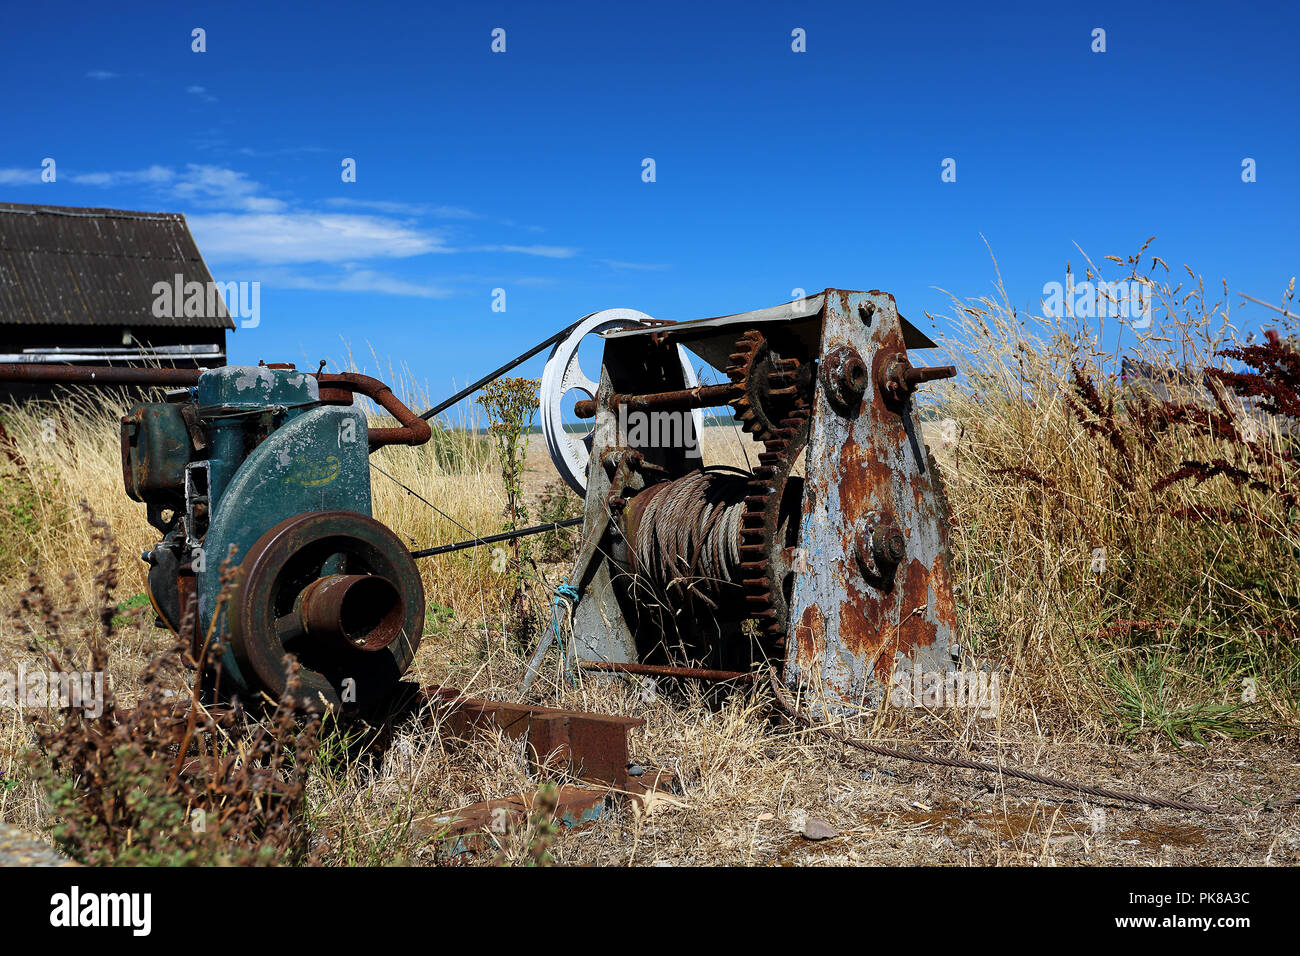 Redundant old winch machinery abandoned in a field next to the beach at Aldeburgh, Suffolk, UK - Stock Image